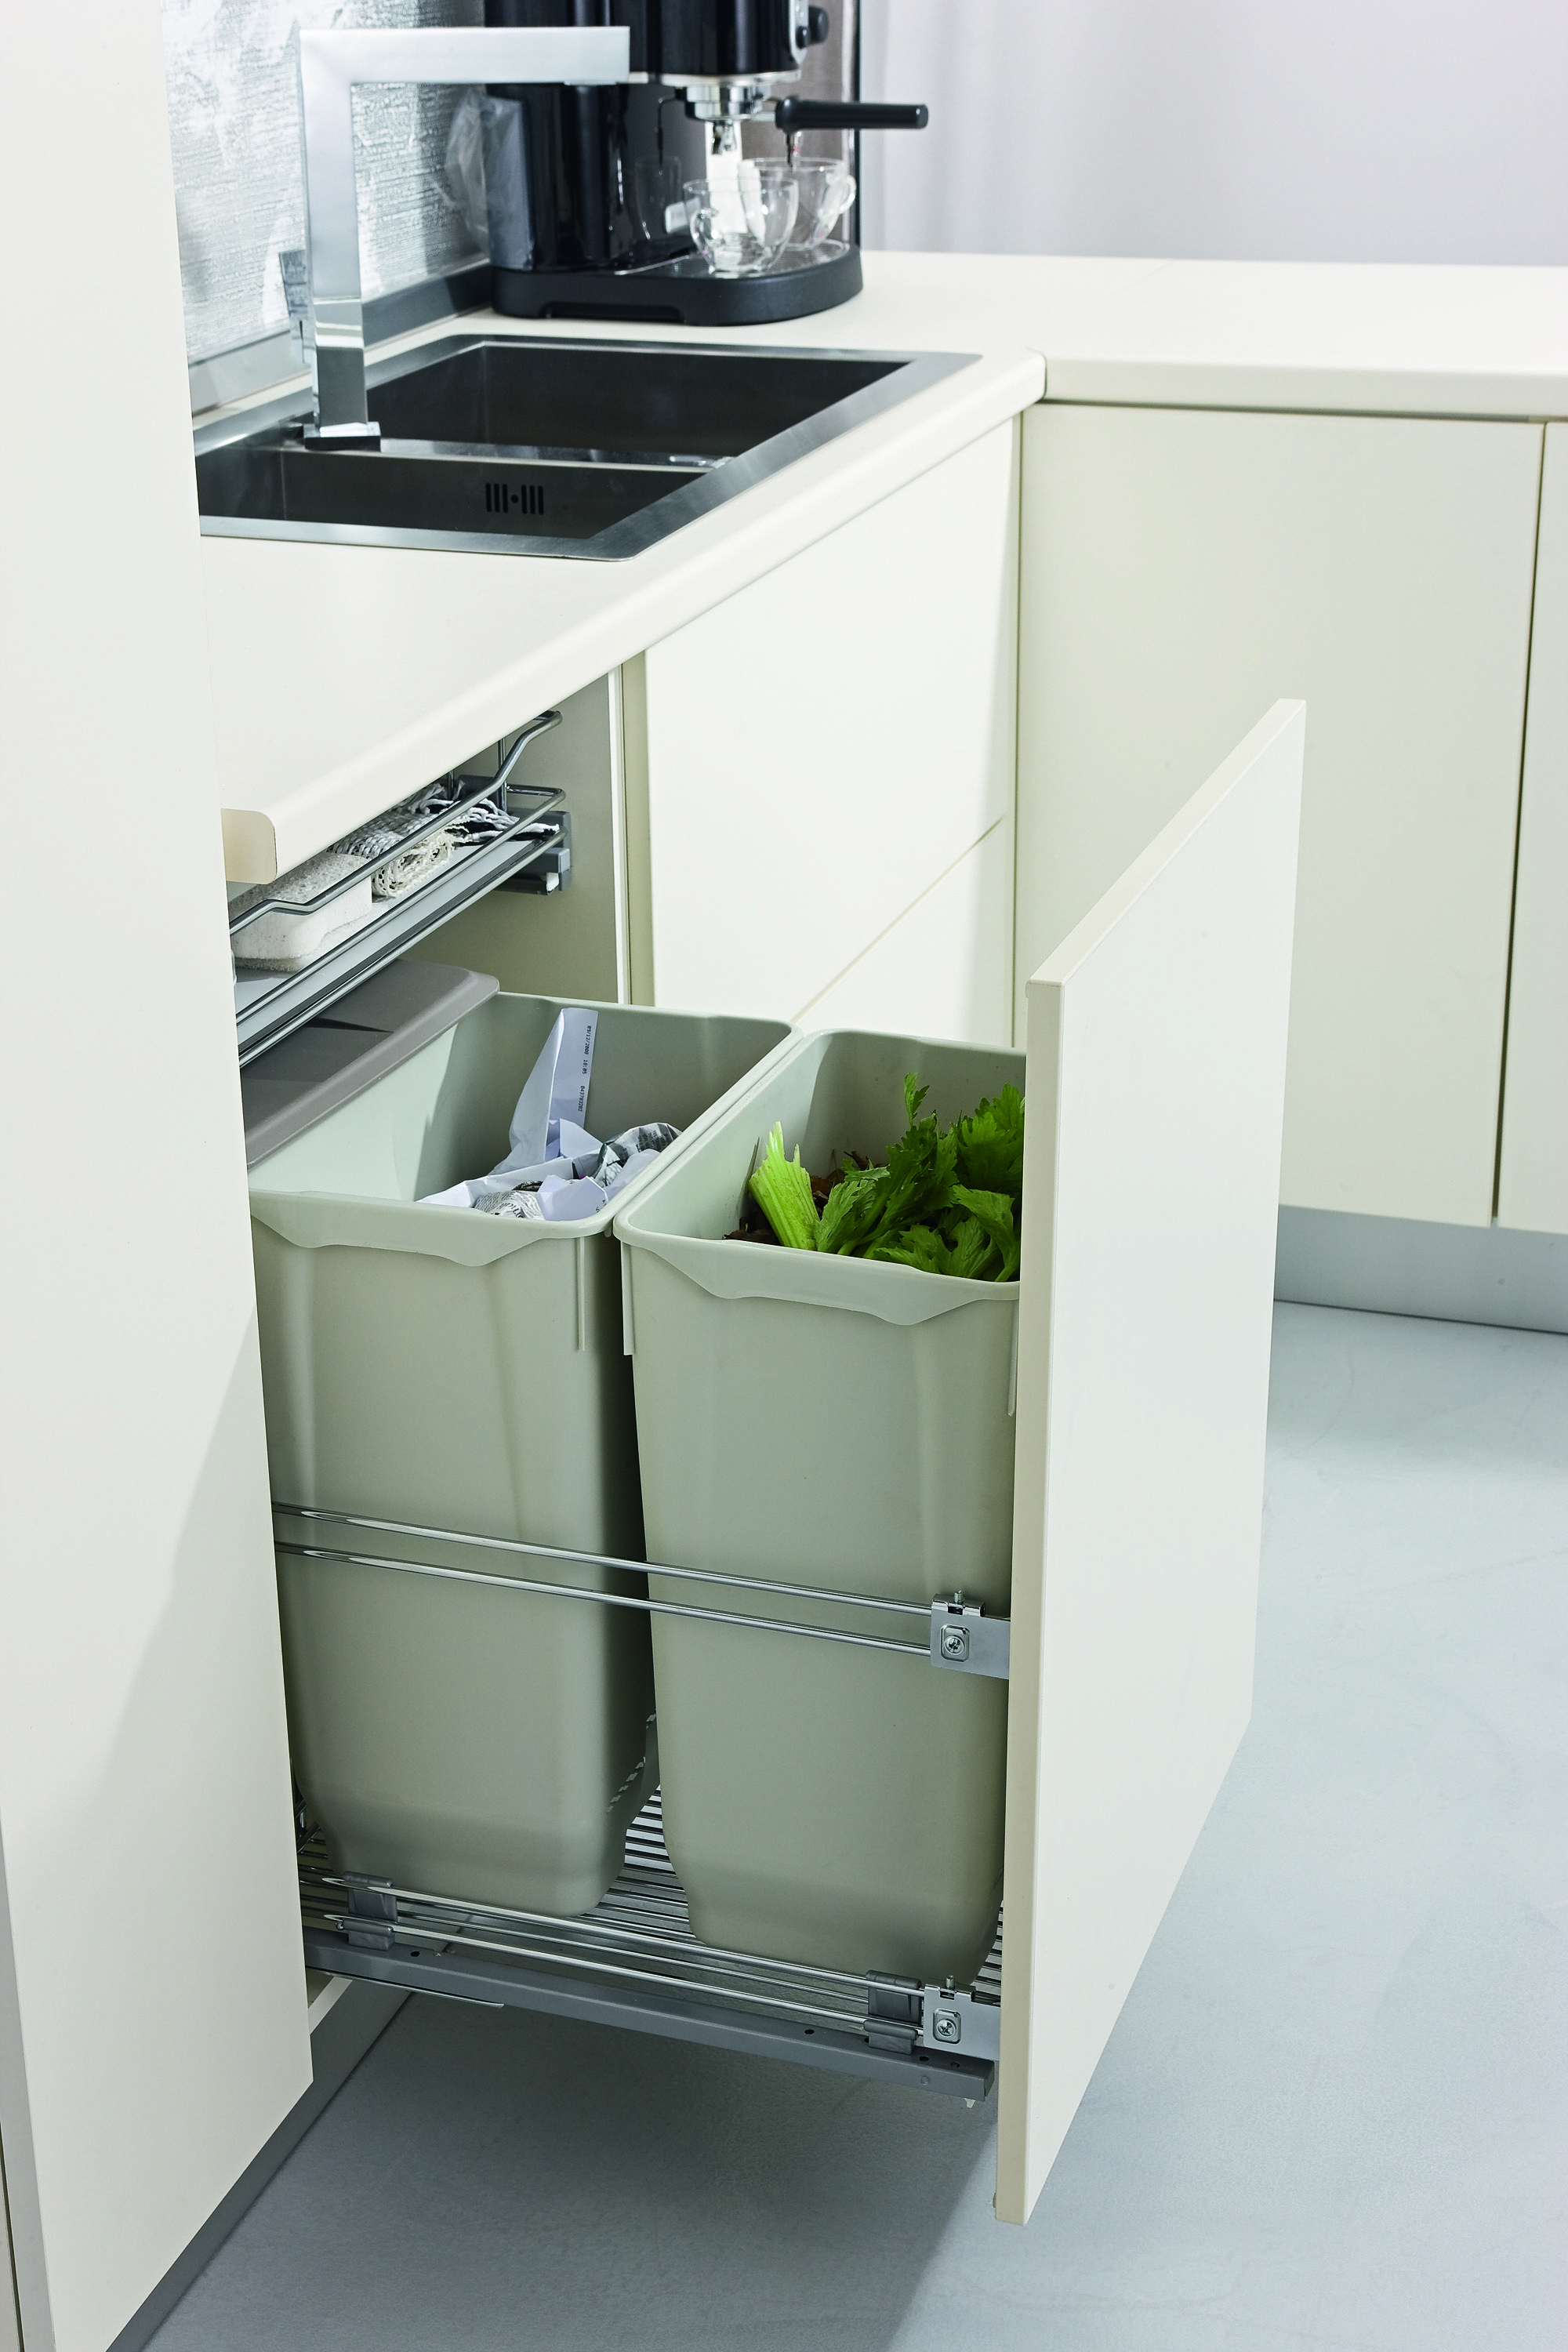 Bin storage solutions using Italian Wirework in the kitchen - making recycling a doddle & Bin storage solutions using Italian Wirework in the kitchen - making ...